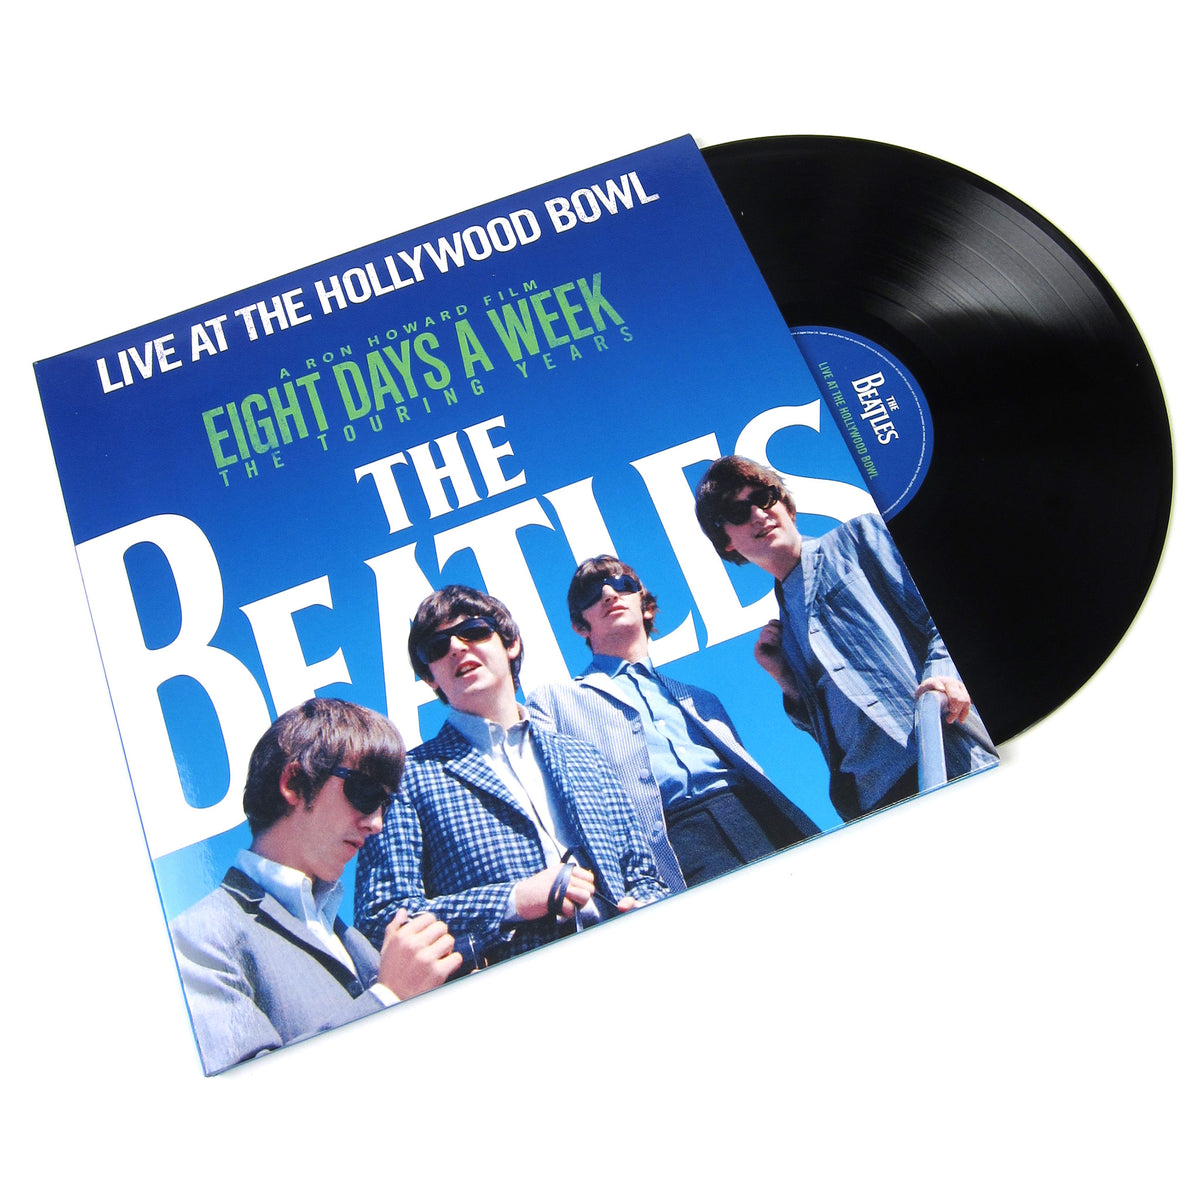 The Beatles: Live At The Hollywood Bowl Vinyl LP